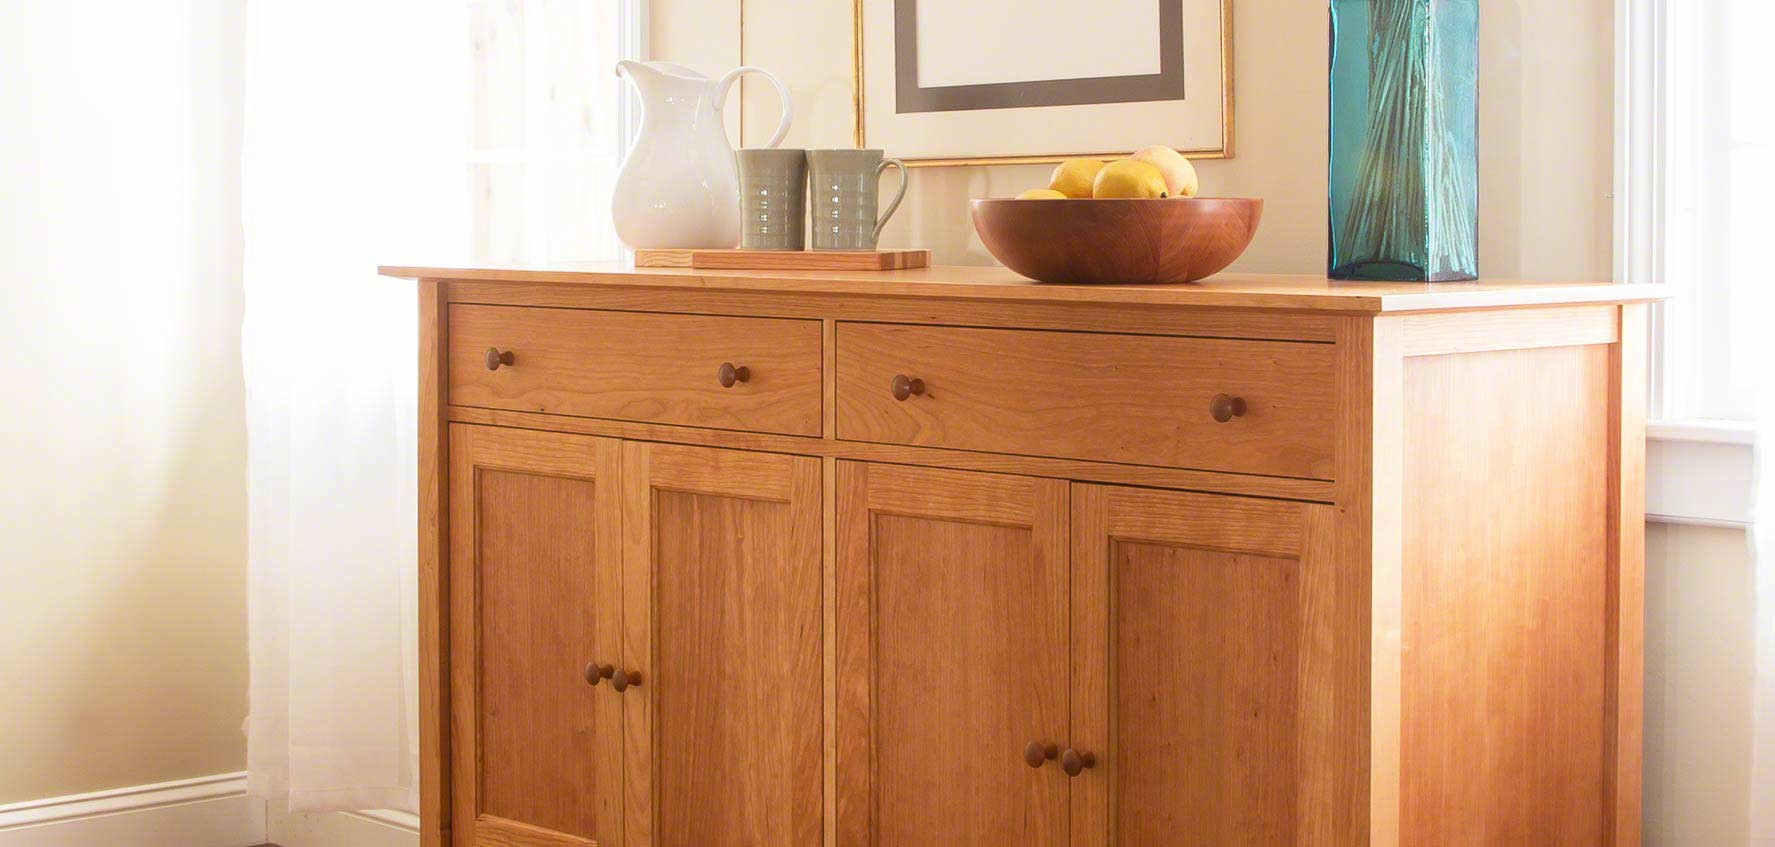 Handcrafted Wood Buffets & Sideboards - Vermont Woods Studios intended for Modern Natural Oak Dining Buffets (Image 21 of 30)